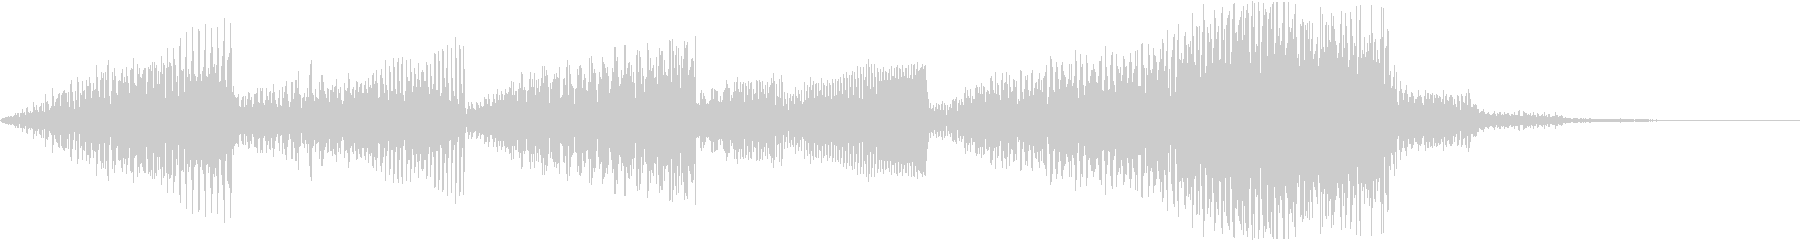 Chic and fine jingle of electronic music's unreproduced waveform